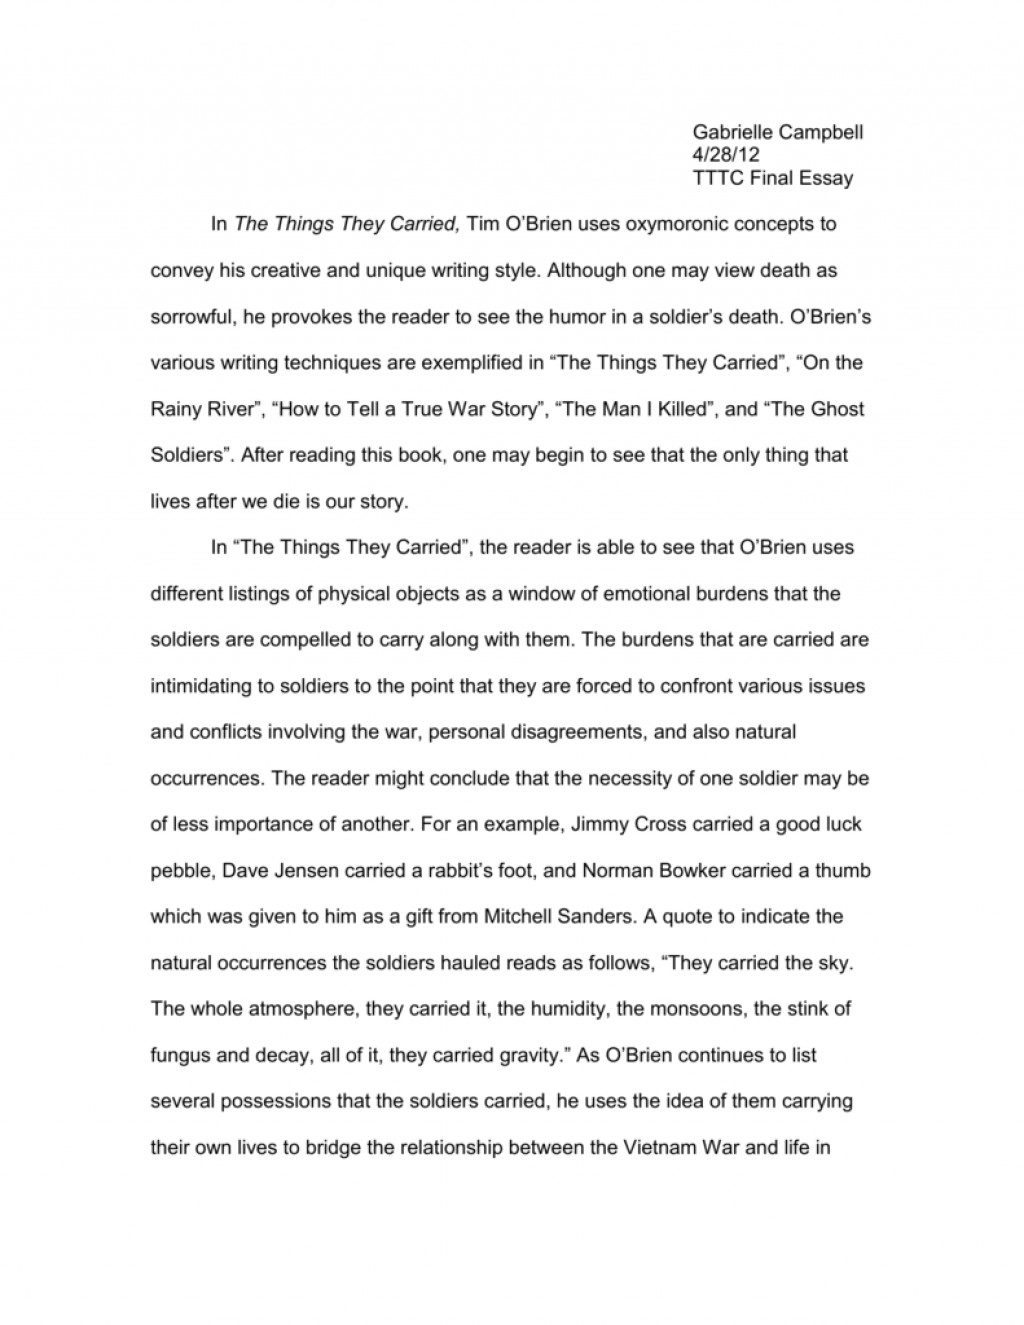 001 The Things They Carried Essay Example 008028277 1 Incredible Introduction Questions Prompts Large